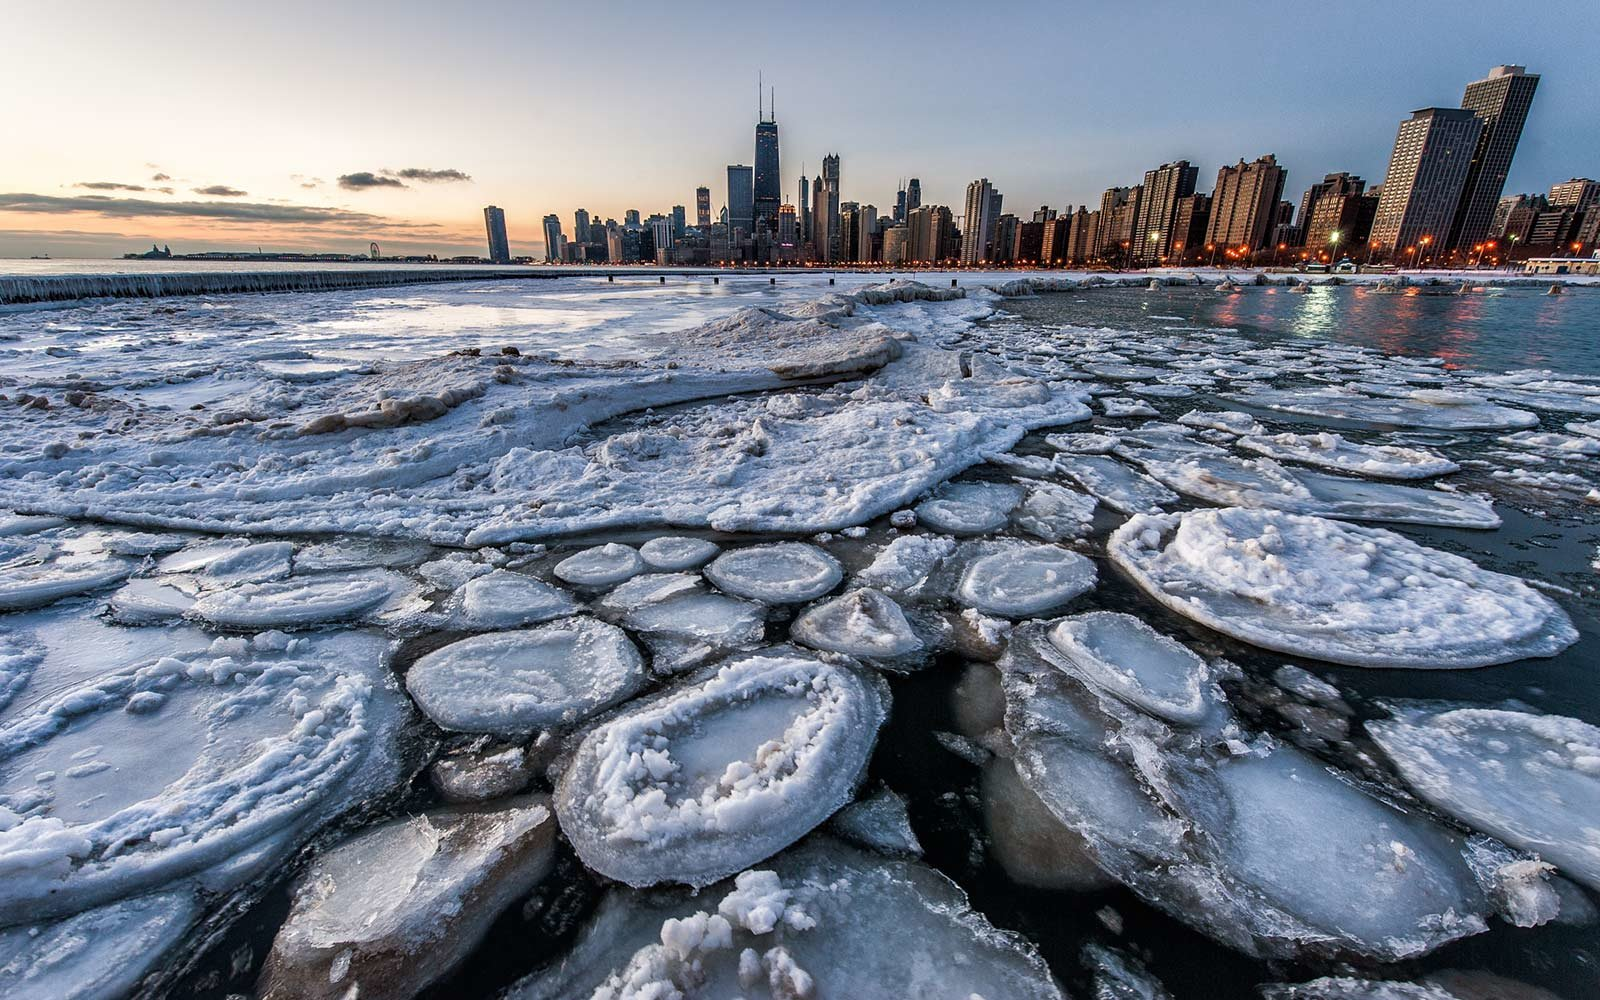 Ice on Lake, Chicago, illinois